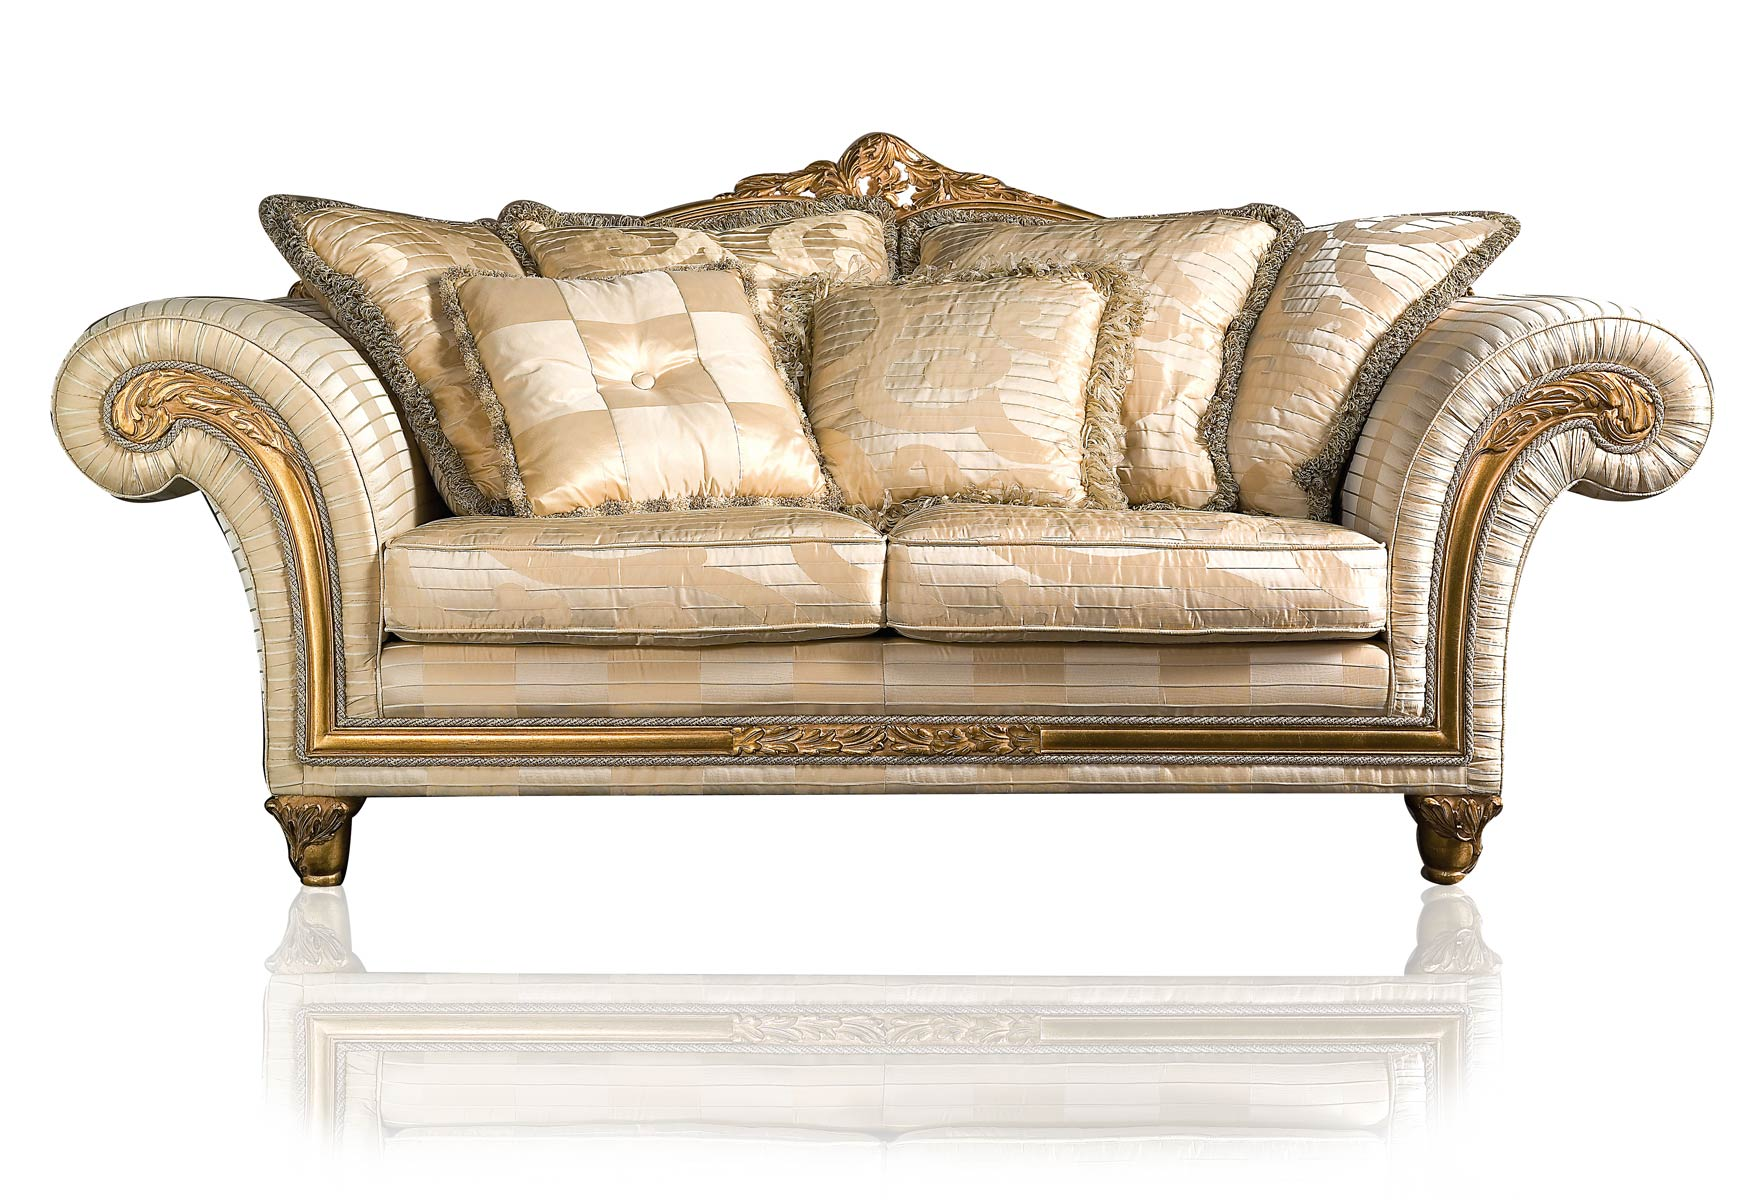 Luxury classic sofa and armchairs imperial by vimercati for Traditional furniture